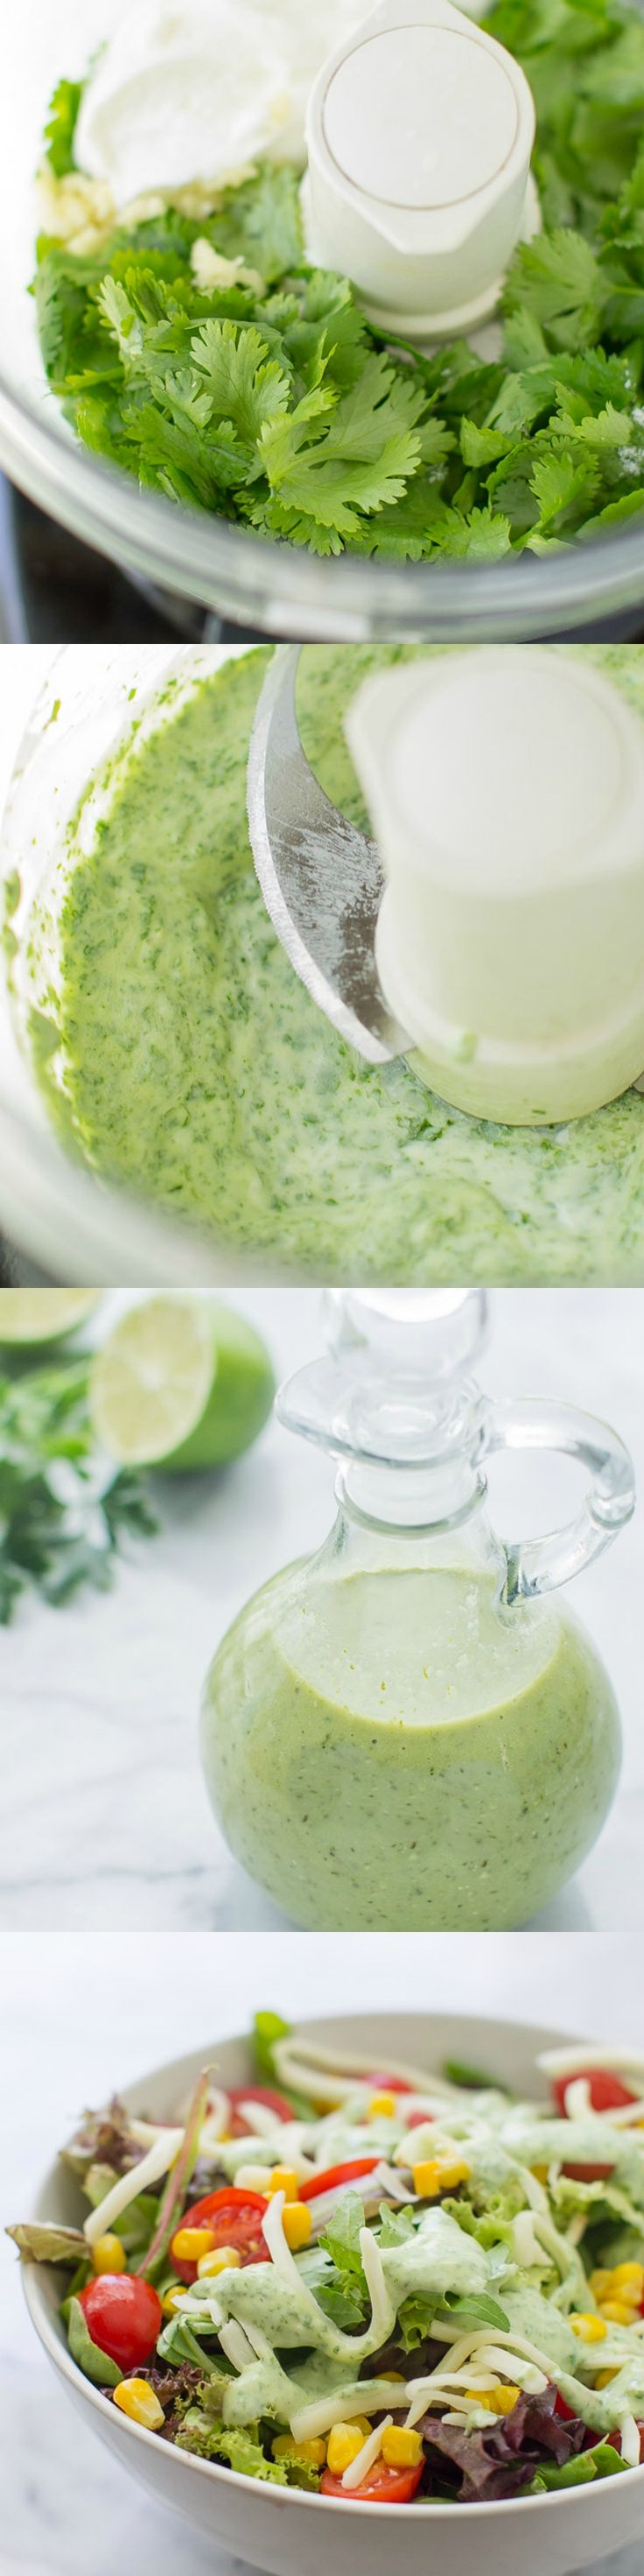 An easy, creamy Cilantro Lime Dressing made with Greek yogurt! So good you'll want to eat it with a spoon. Guaranteed to brighten up any salad! Naturally gluten free.